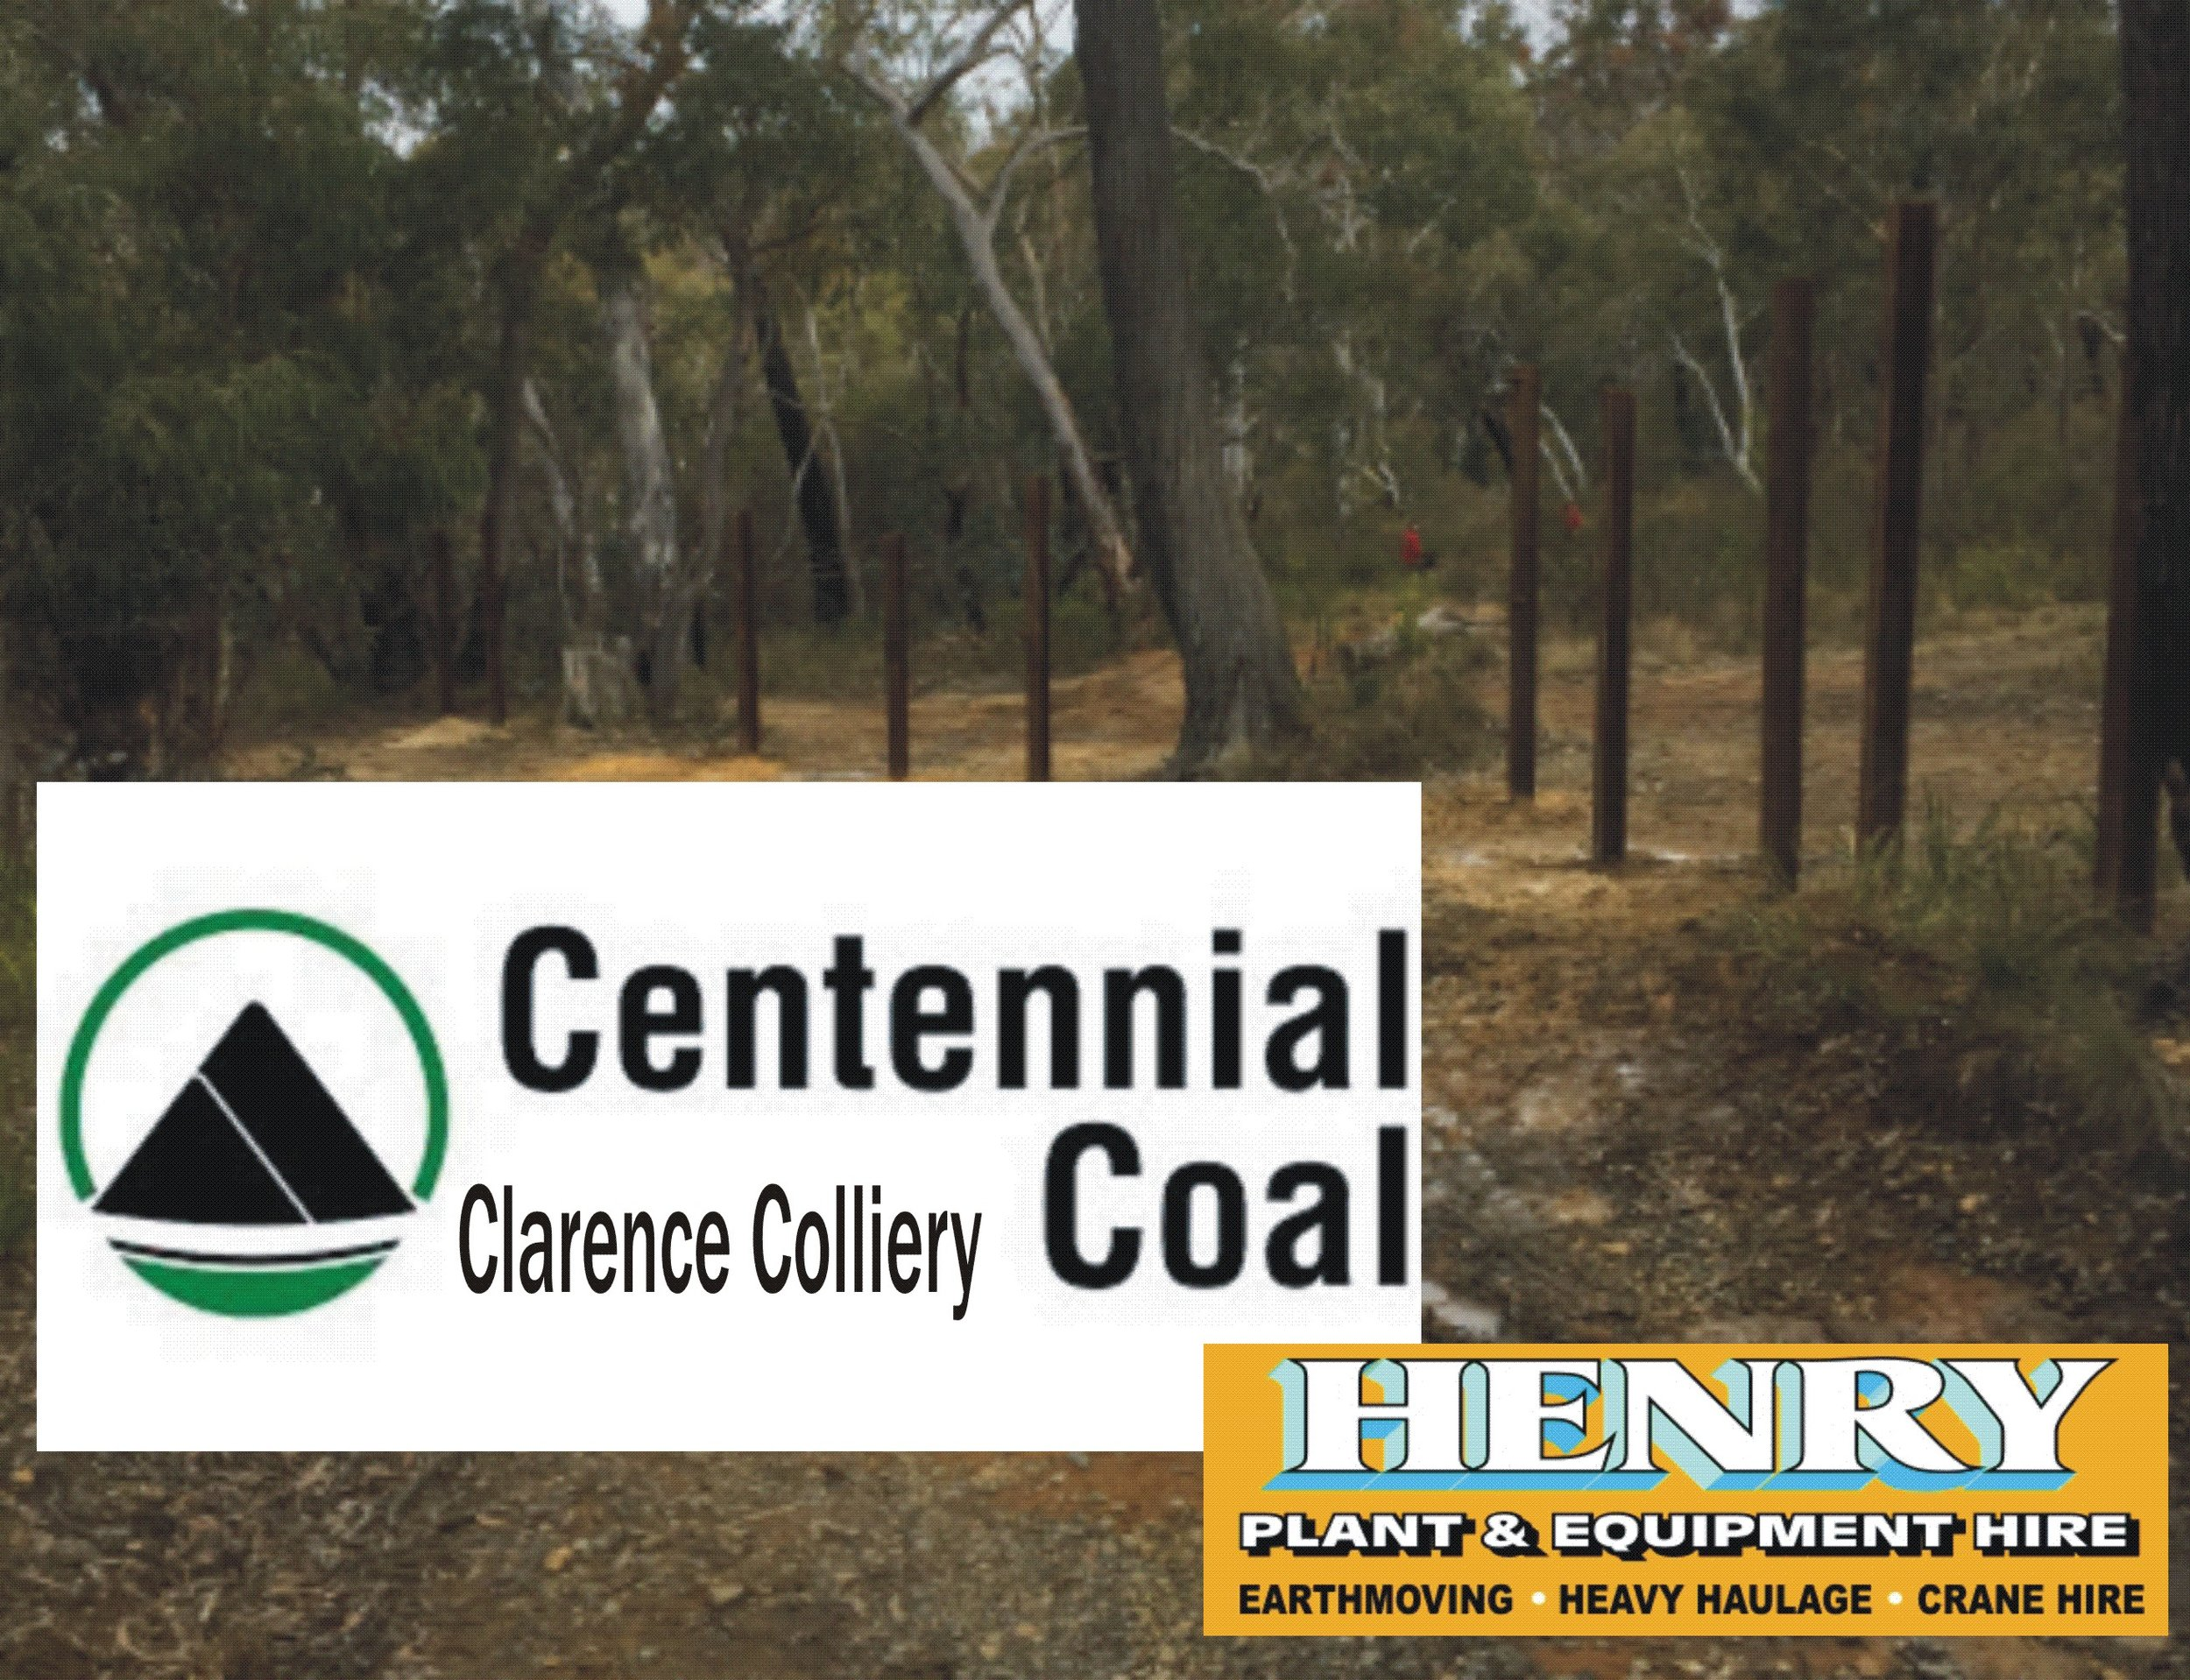 - Both of these projects was also assisted by Centennial Coal's Clarence Colliery who contributed time and materials used as bollards. Clarence Colliery also have assisted with contributions to road maintenance along with Henry Plant Hire.